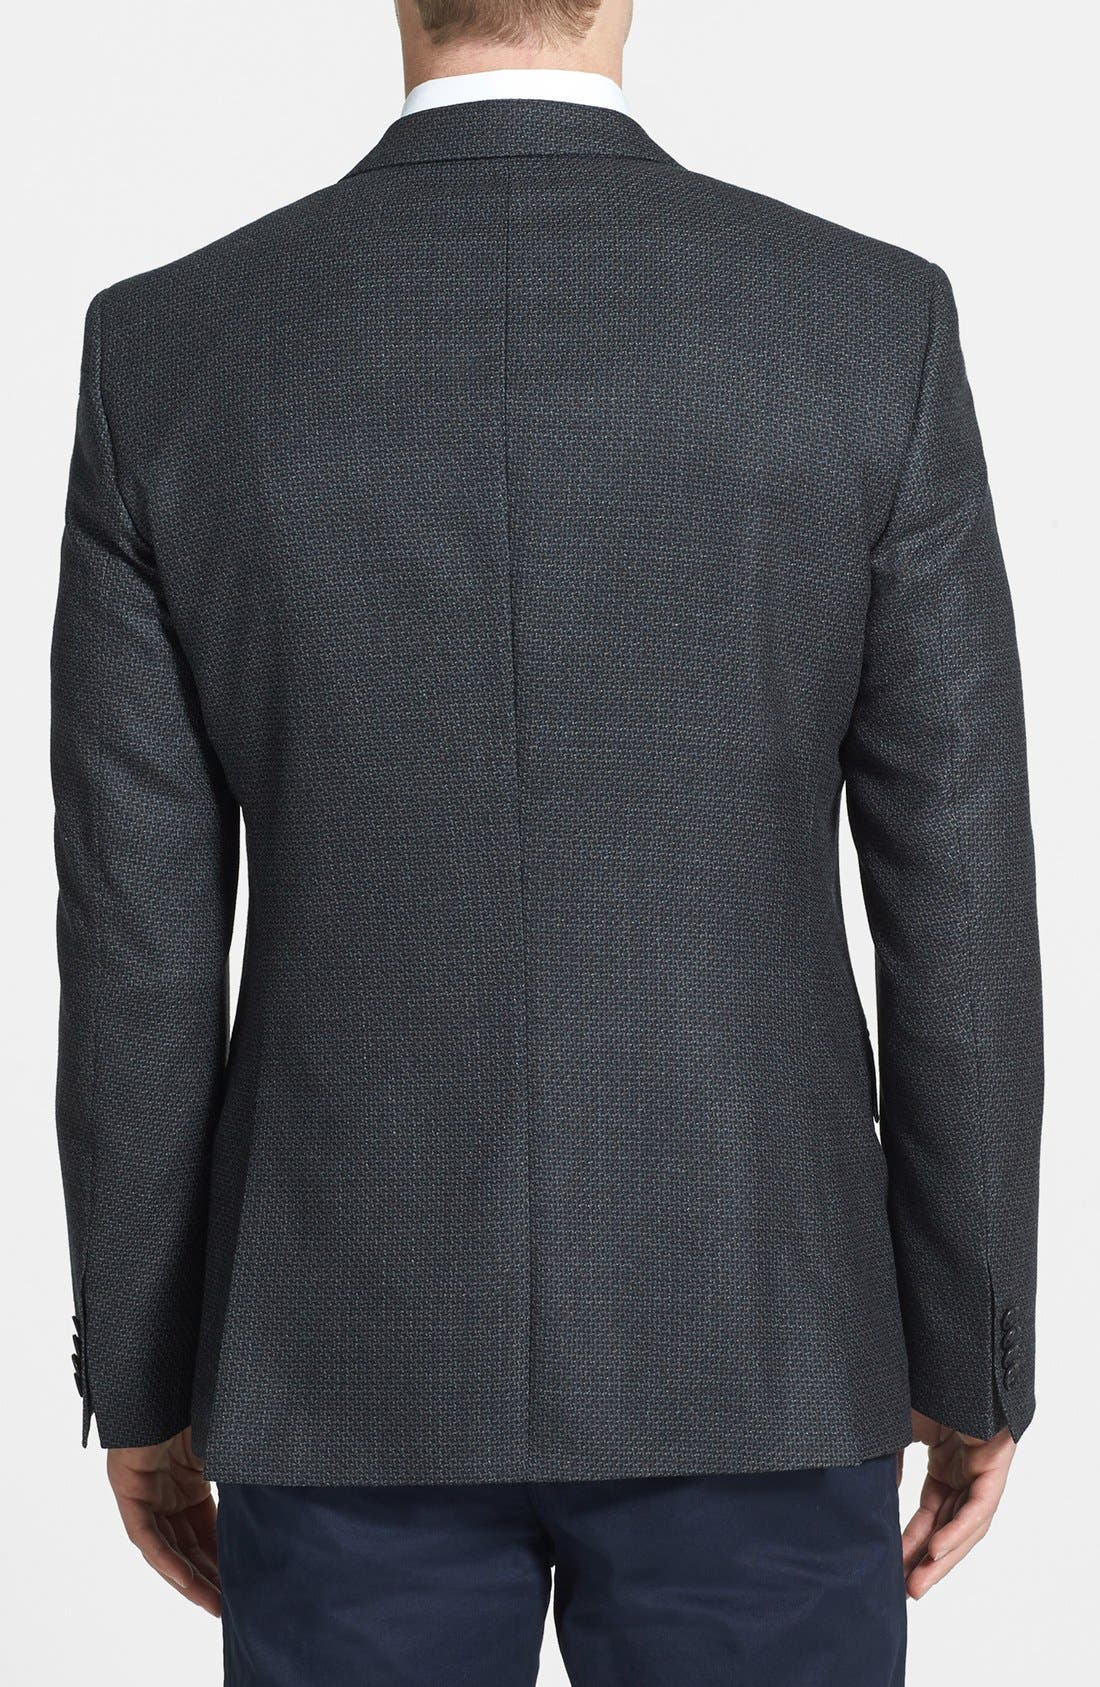 Alternate Image 2  - BOSS HUGO BOSS 'Hutch' Trim Fit Wool Sportcoat